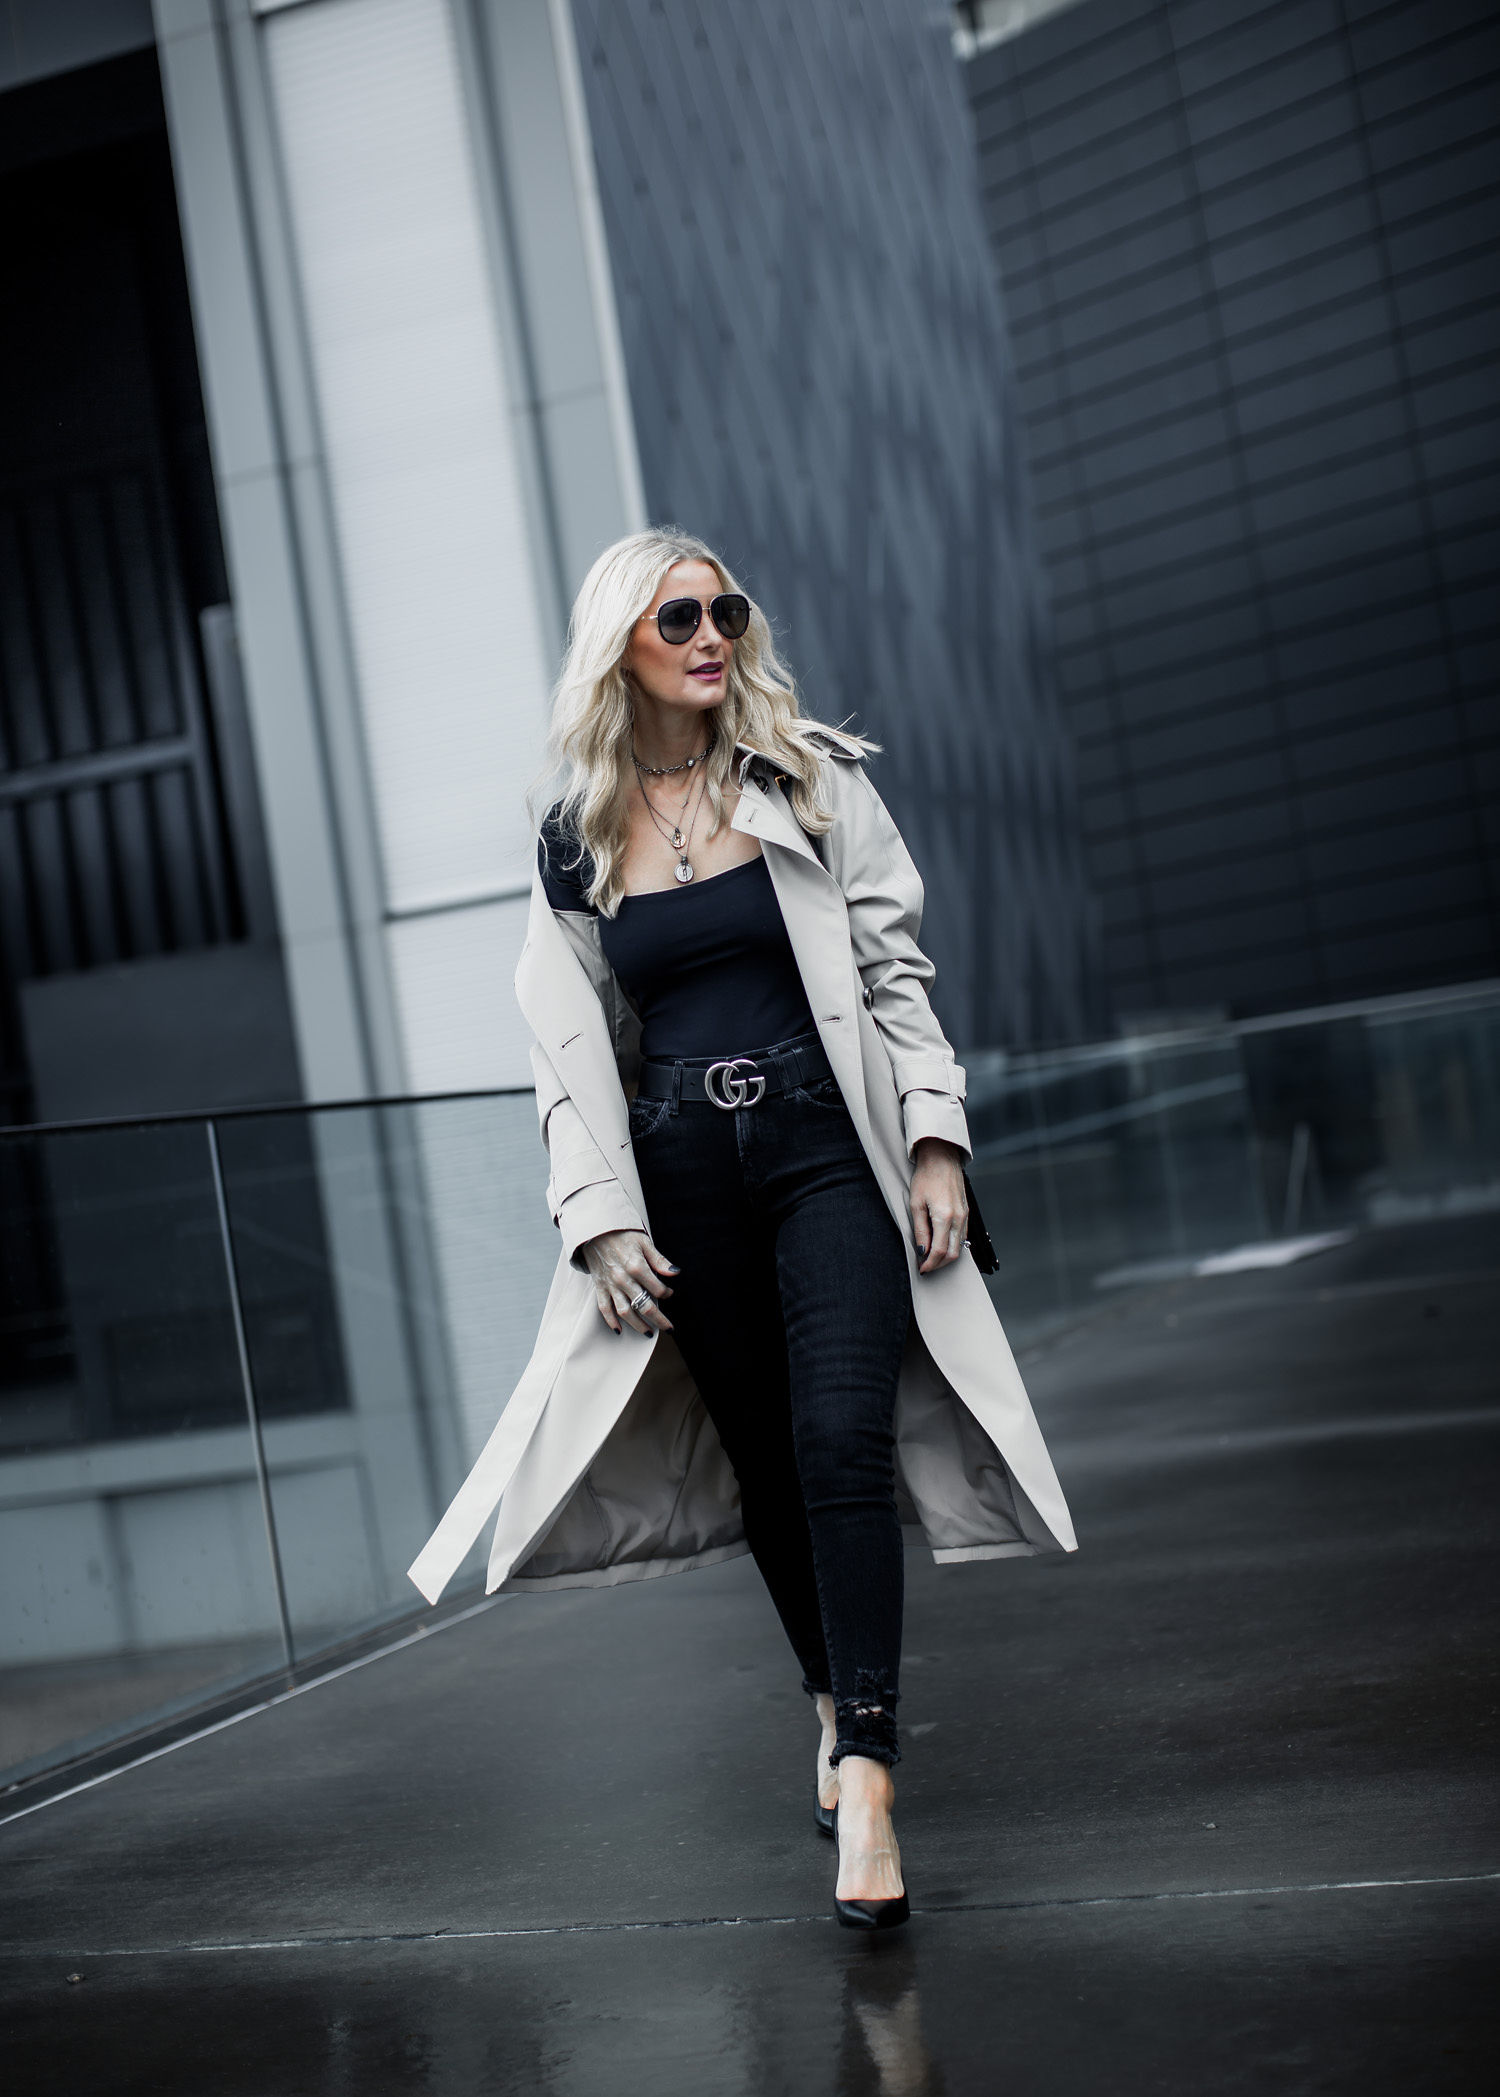 Dallas fashion blogger wearing chic trench coat and black skinny jeans